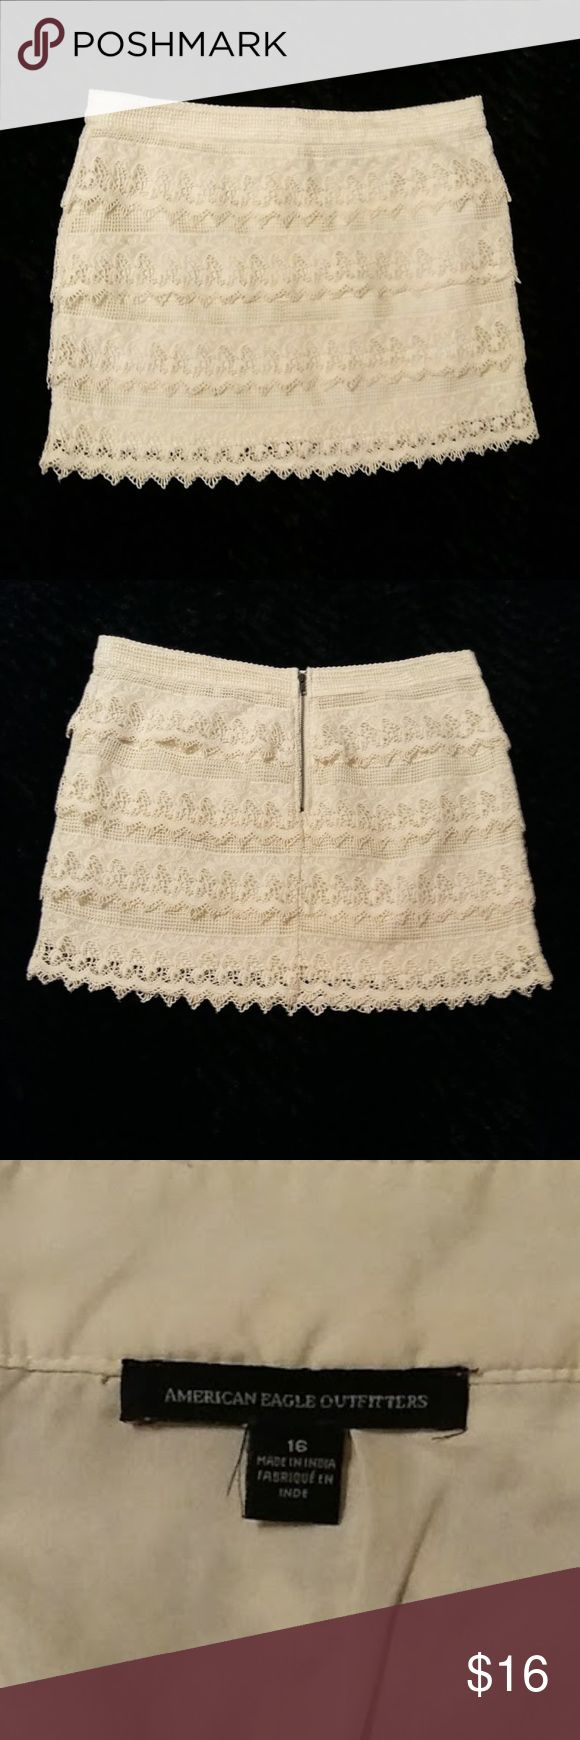 """[American Eagle] Tiered Mini Skirt (Size 16) BRAND:  American Eagle STYLE:  Tiered Lace Mini Skirt SIZE:  16 COLOR:  Cream MATERIAL:  100% Cotton (Inside)  100% Polyester (Outside) CONDITION:  Excellent INVENTORY:   Tiered crochet lace with two different patterns.    WAIST:  17 ½""""""""  LENGTH: 16""""  Measurements are approximate and taken laying flat! American Eagle Outfitters Skirts Mini"""